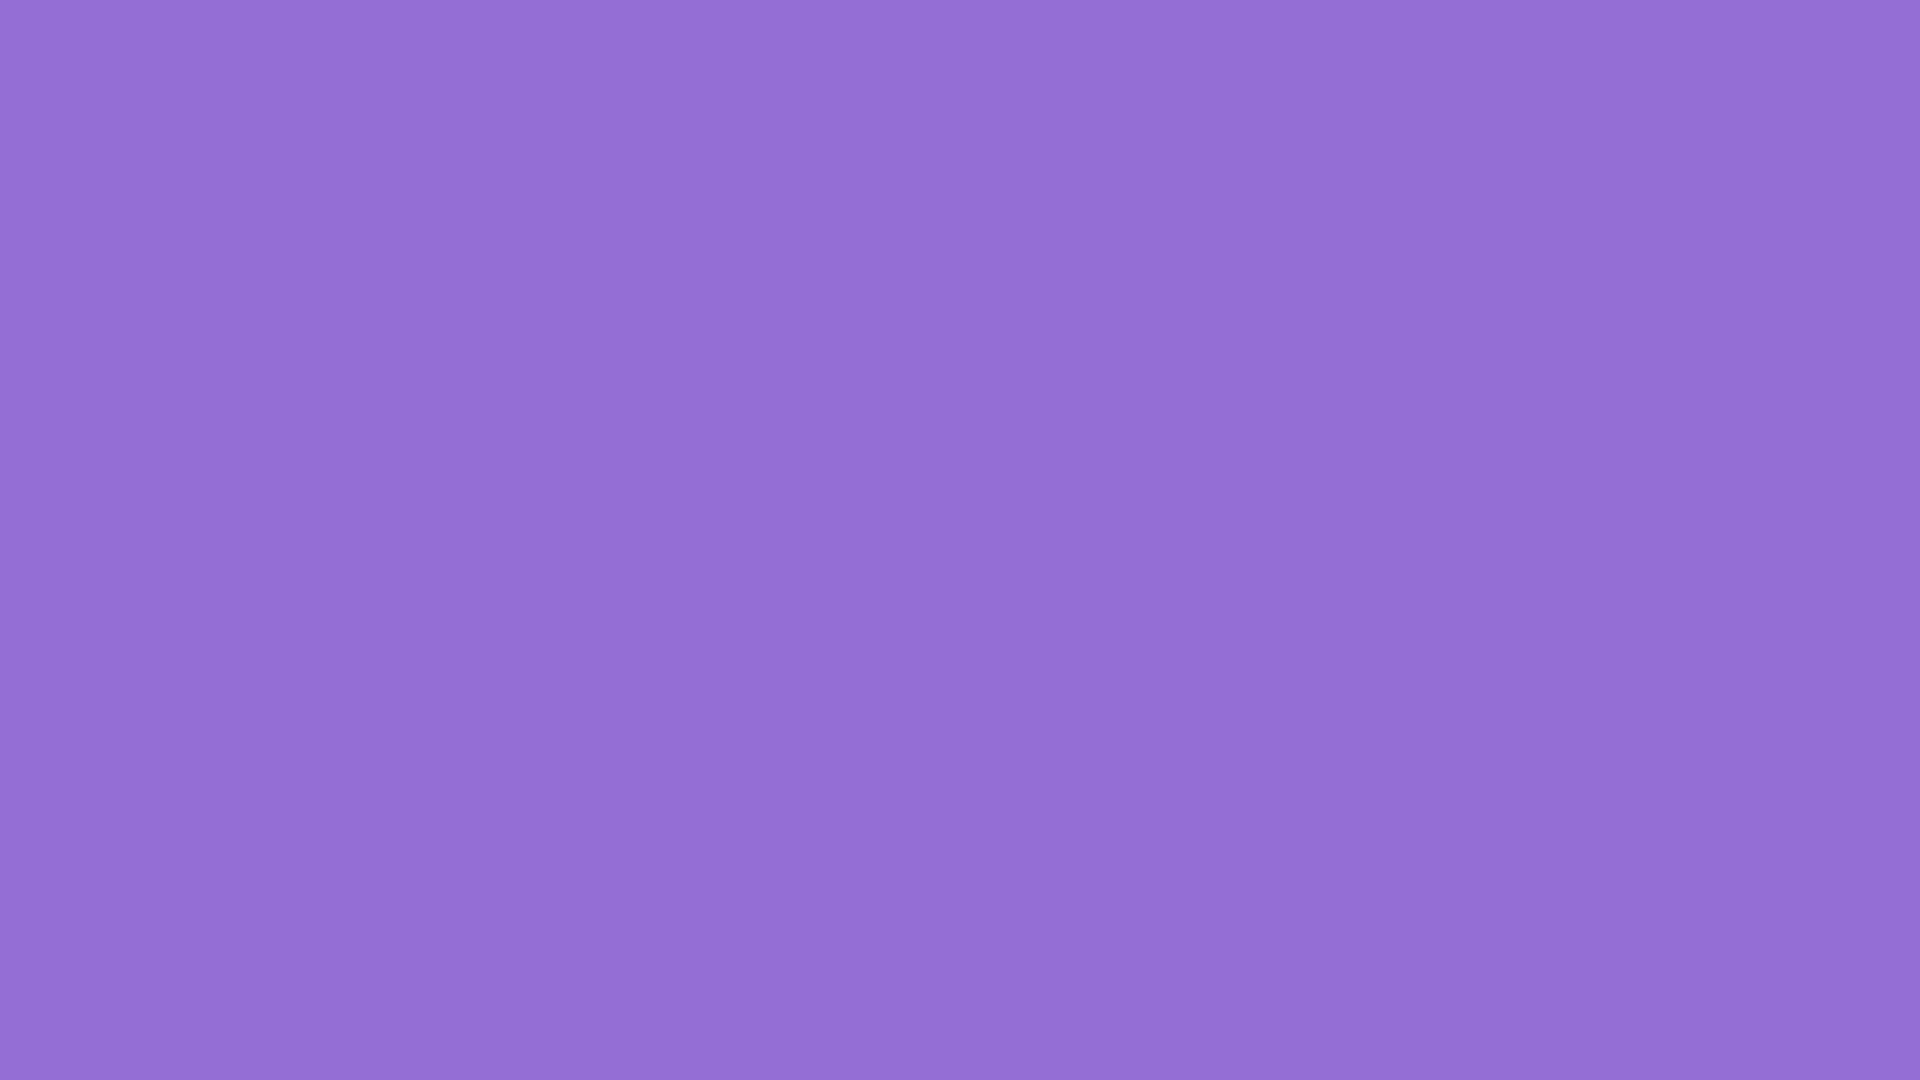 1920x1080 Dark Pastel Purple Solid Color Background